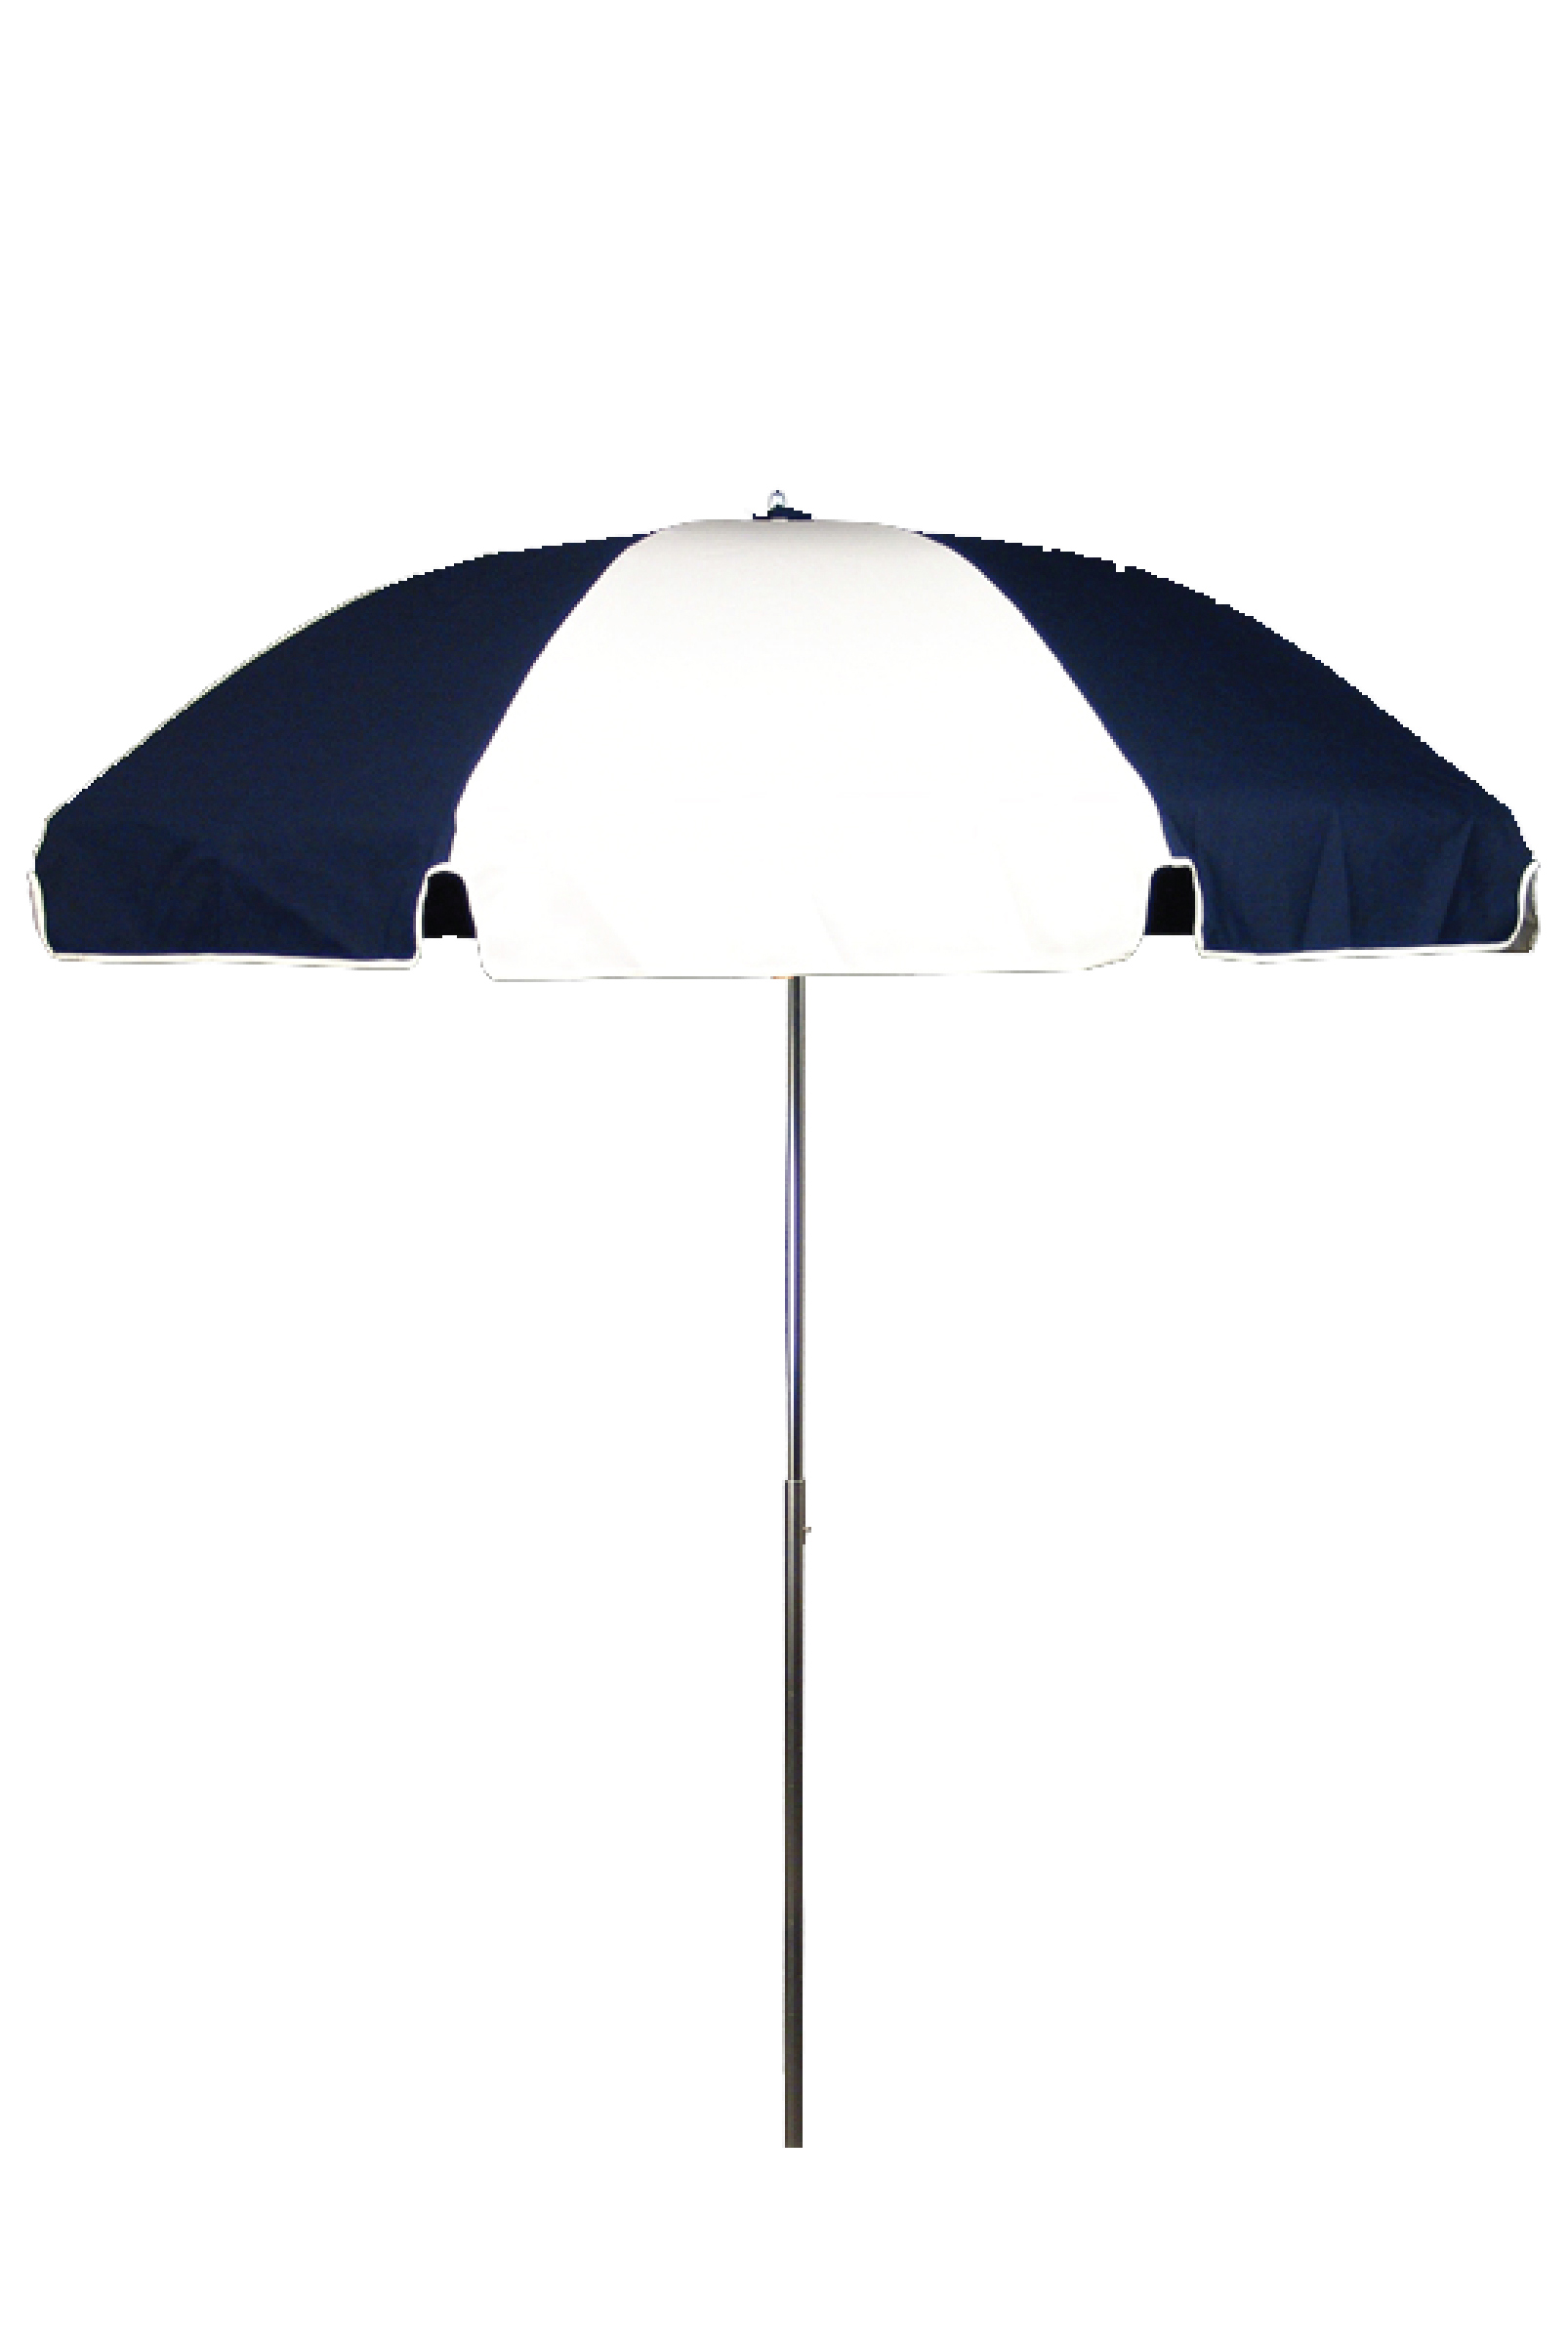 7.5′ PATIO UMBRELLA WITH STEEL SKELETON Stock Fabric:$159.00 Custom Fabric:$199.00 *Tilt Available For An Additional $10.00 *Crank & Tilt Available For An Additional $20.00 Silver Pole Only